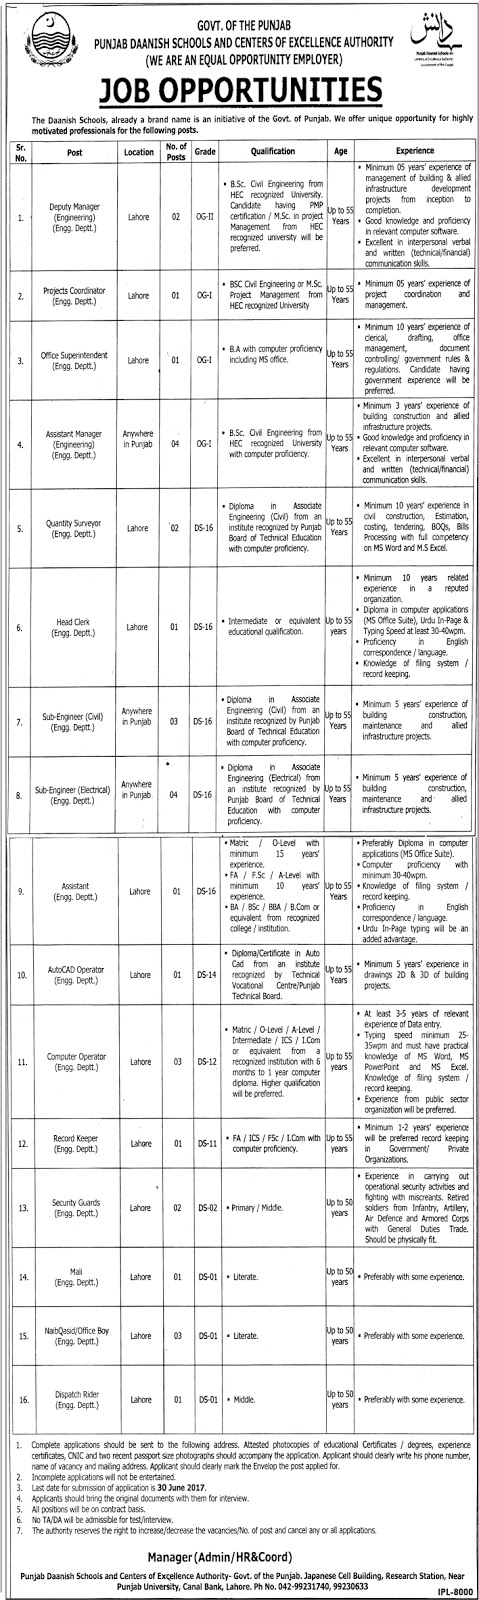 Latest Govt Jobs in Punjab Daanish Schools and Centers of Excellence Authority Jobs in Punjab